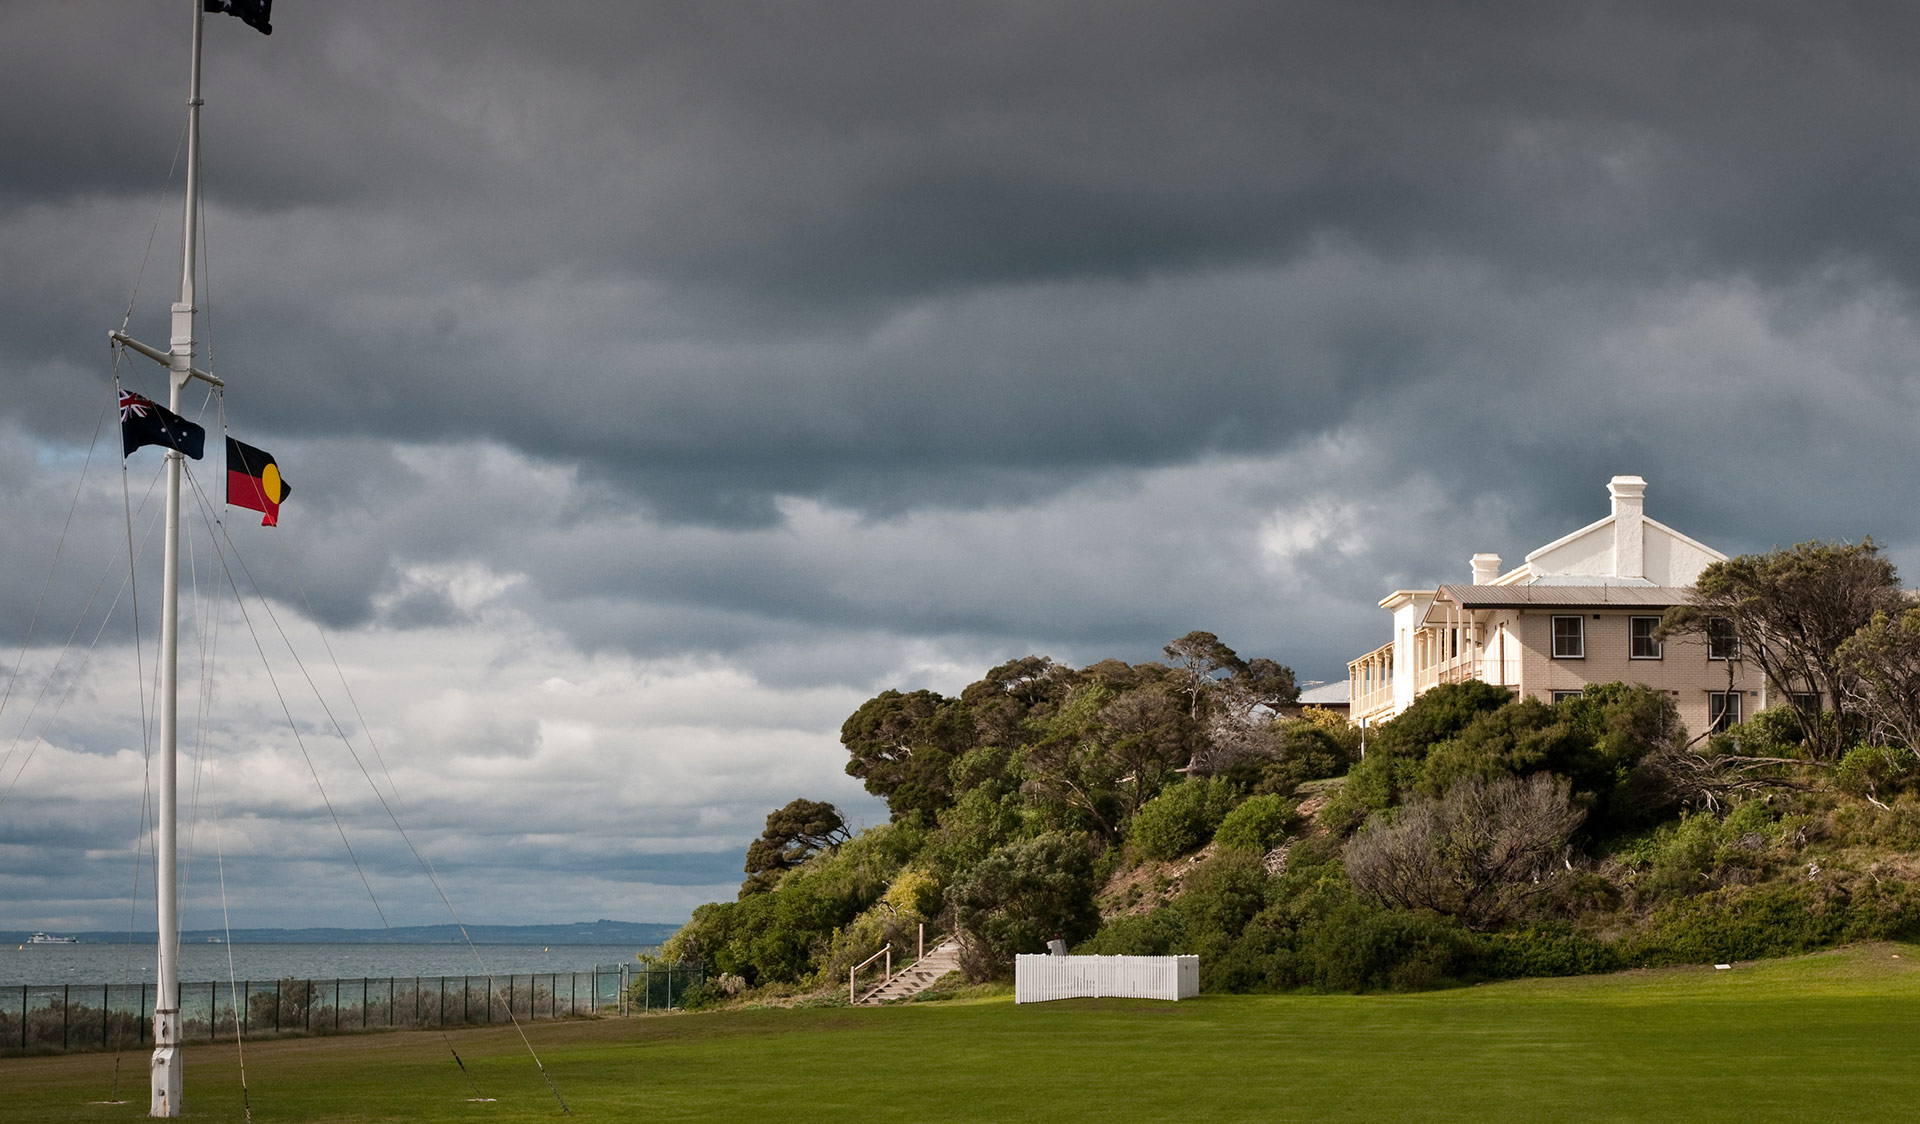 The historic buildings of the Quarantine Station at Point Nepean.